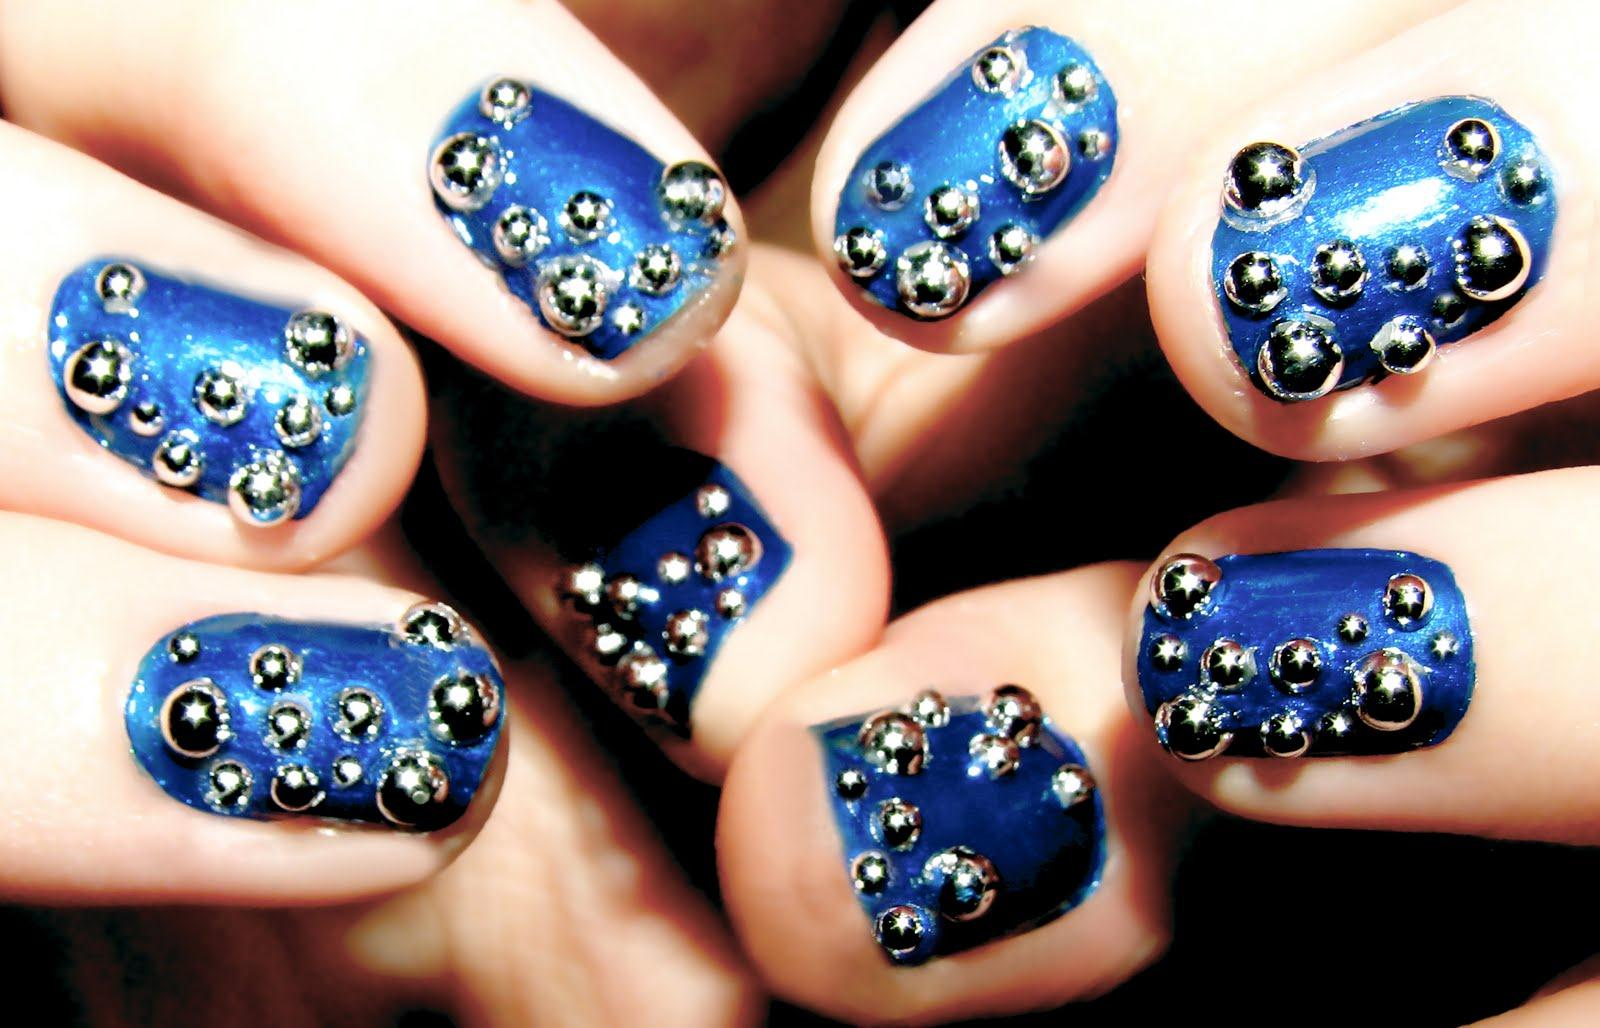 Awesome nail art 2013 for girls 2 stylecry bridal dresses awesome nail art 2013 for girls 2 prinsesfo Choice Image